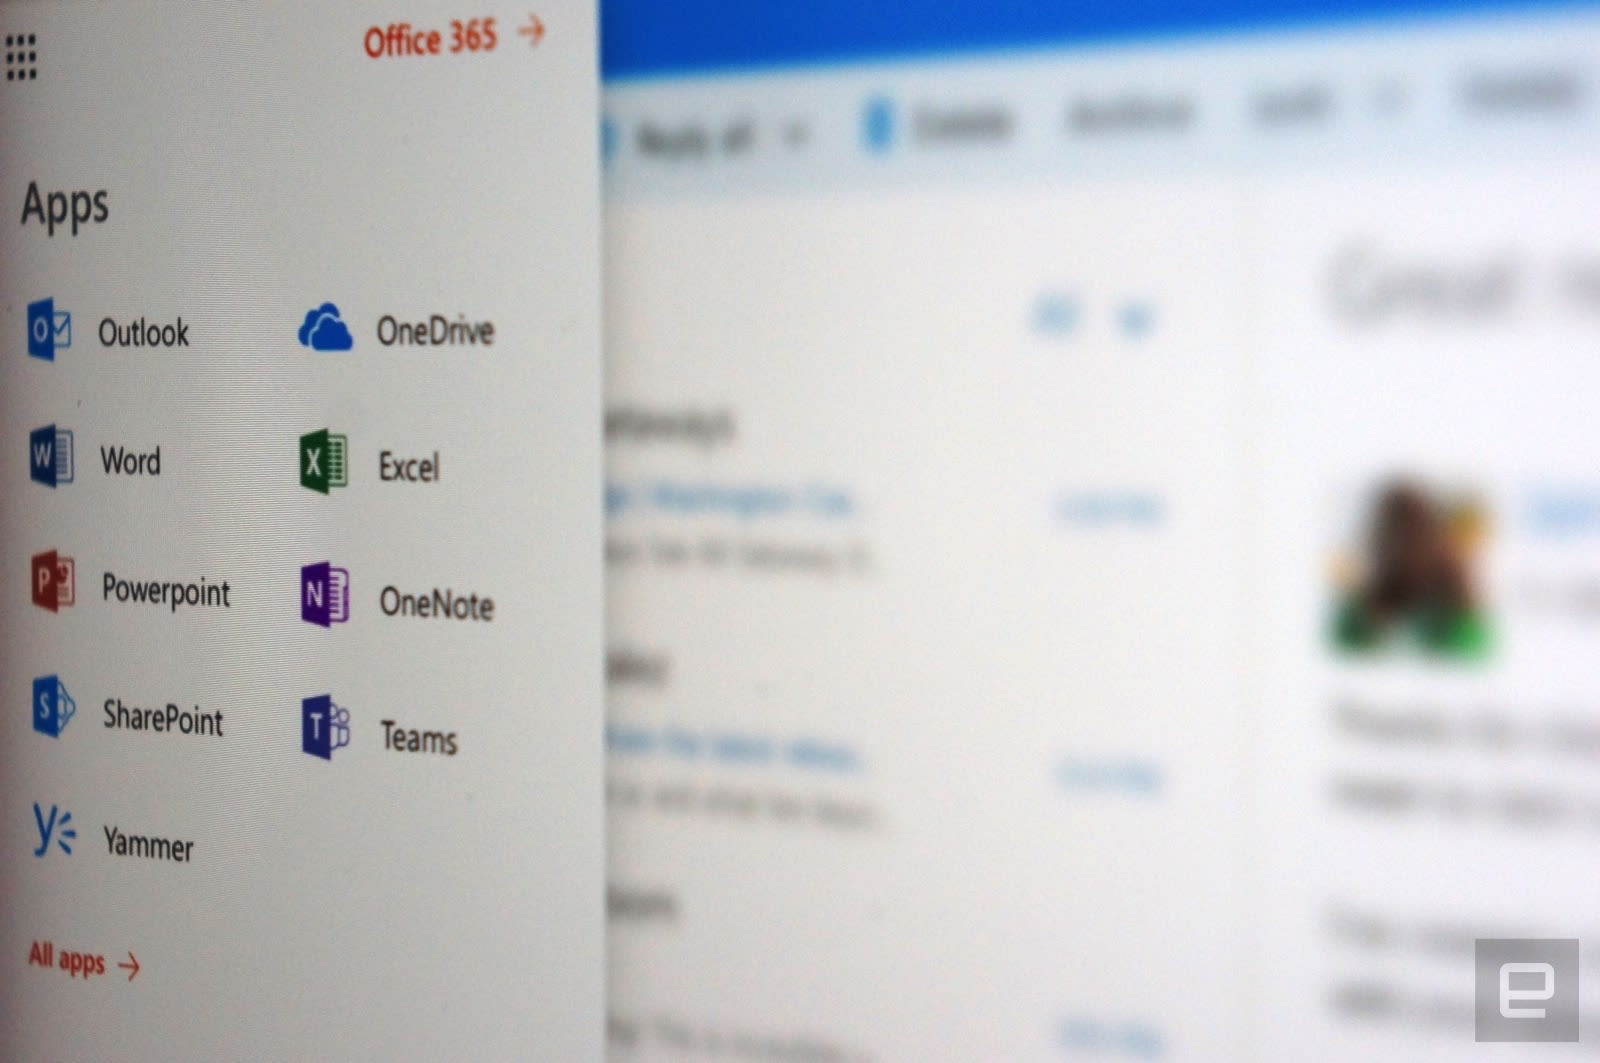 Dyslexics Using Iphone As Reading Aid >> Microsoft Adds Dictation To Office Web Apps To Help With Dyslexia